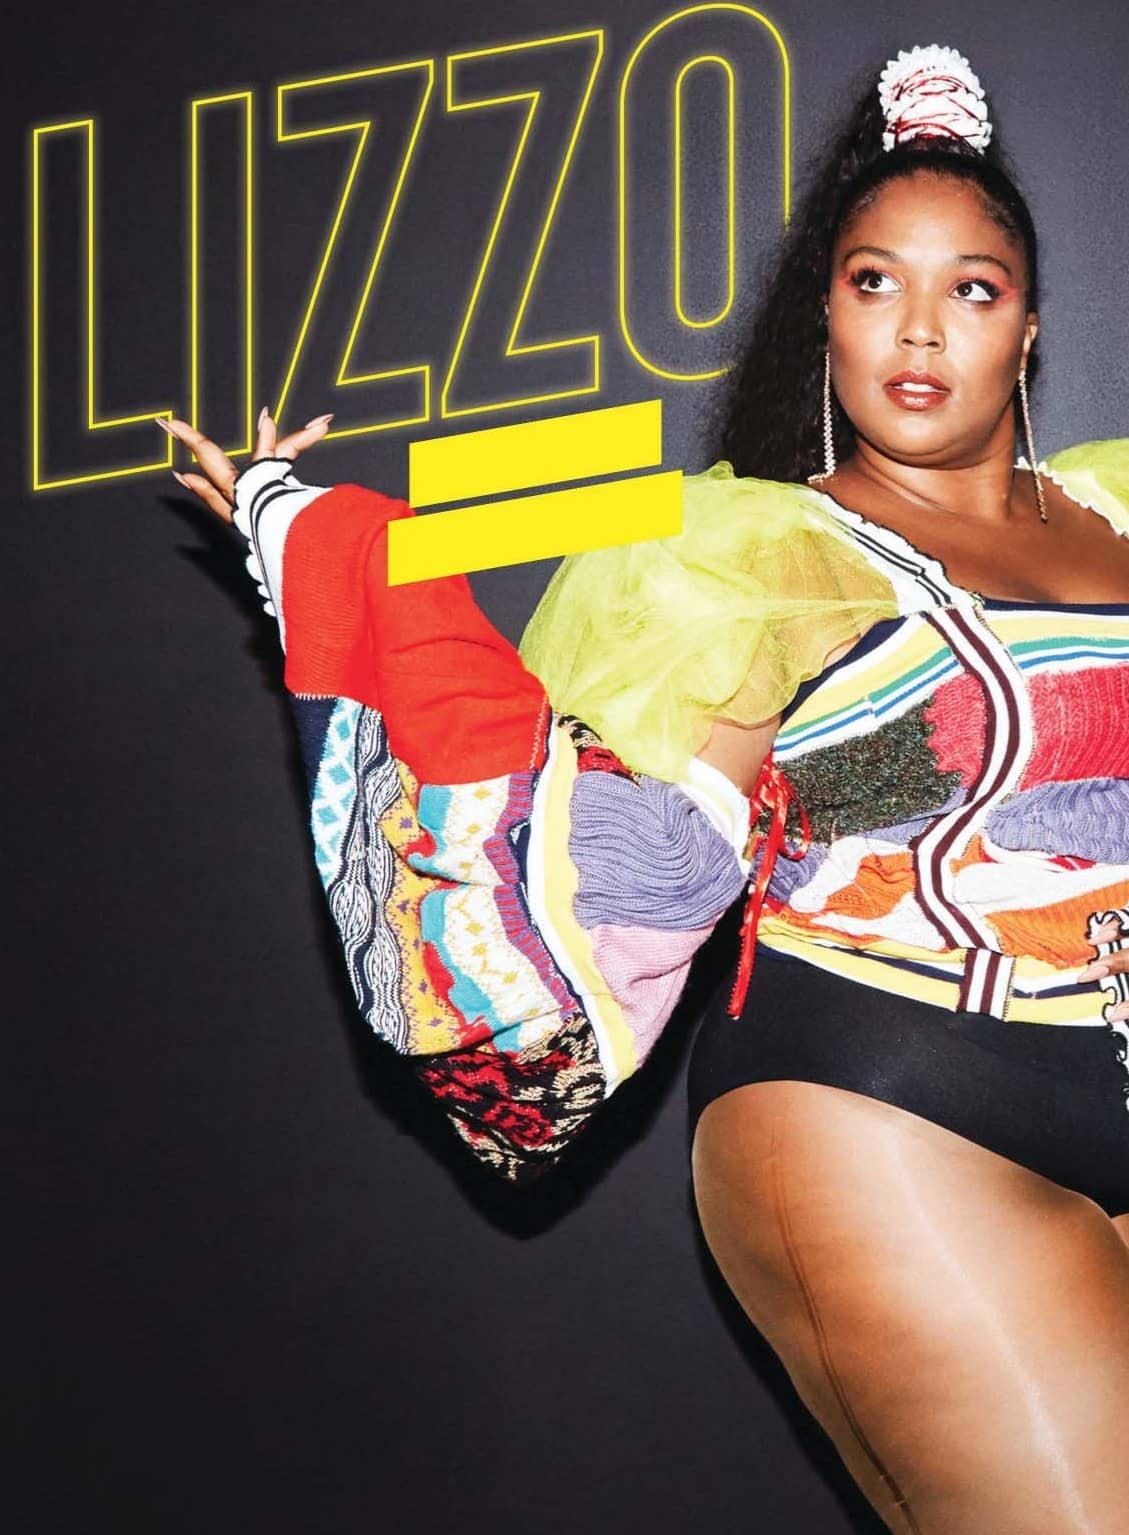 Lizzo - Legend In The Making